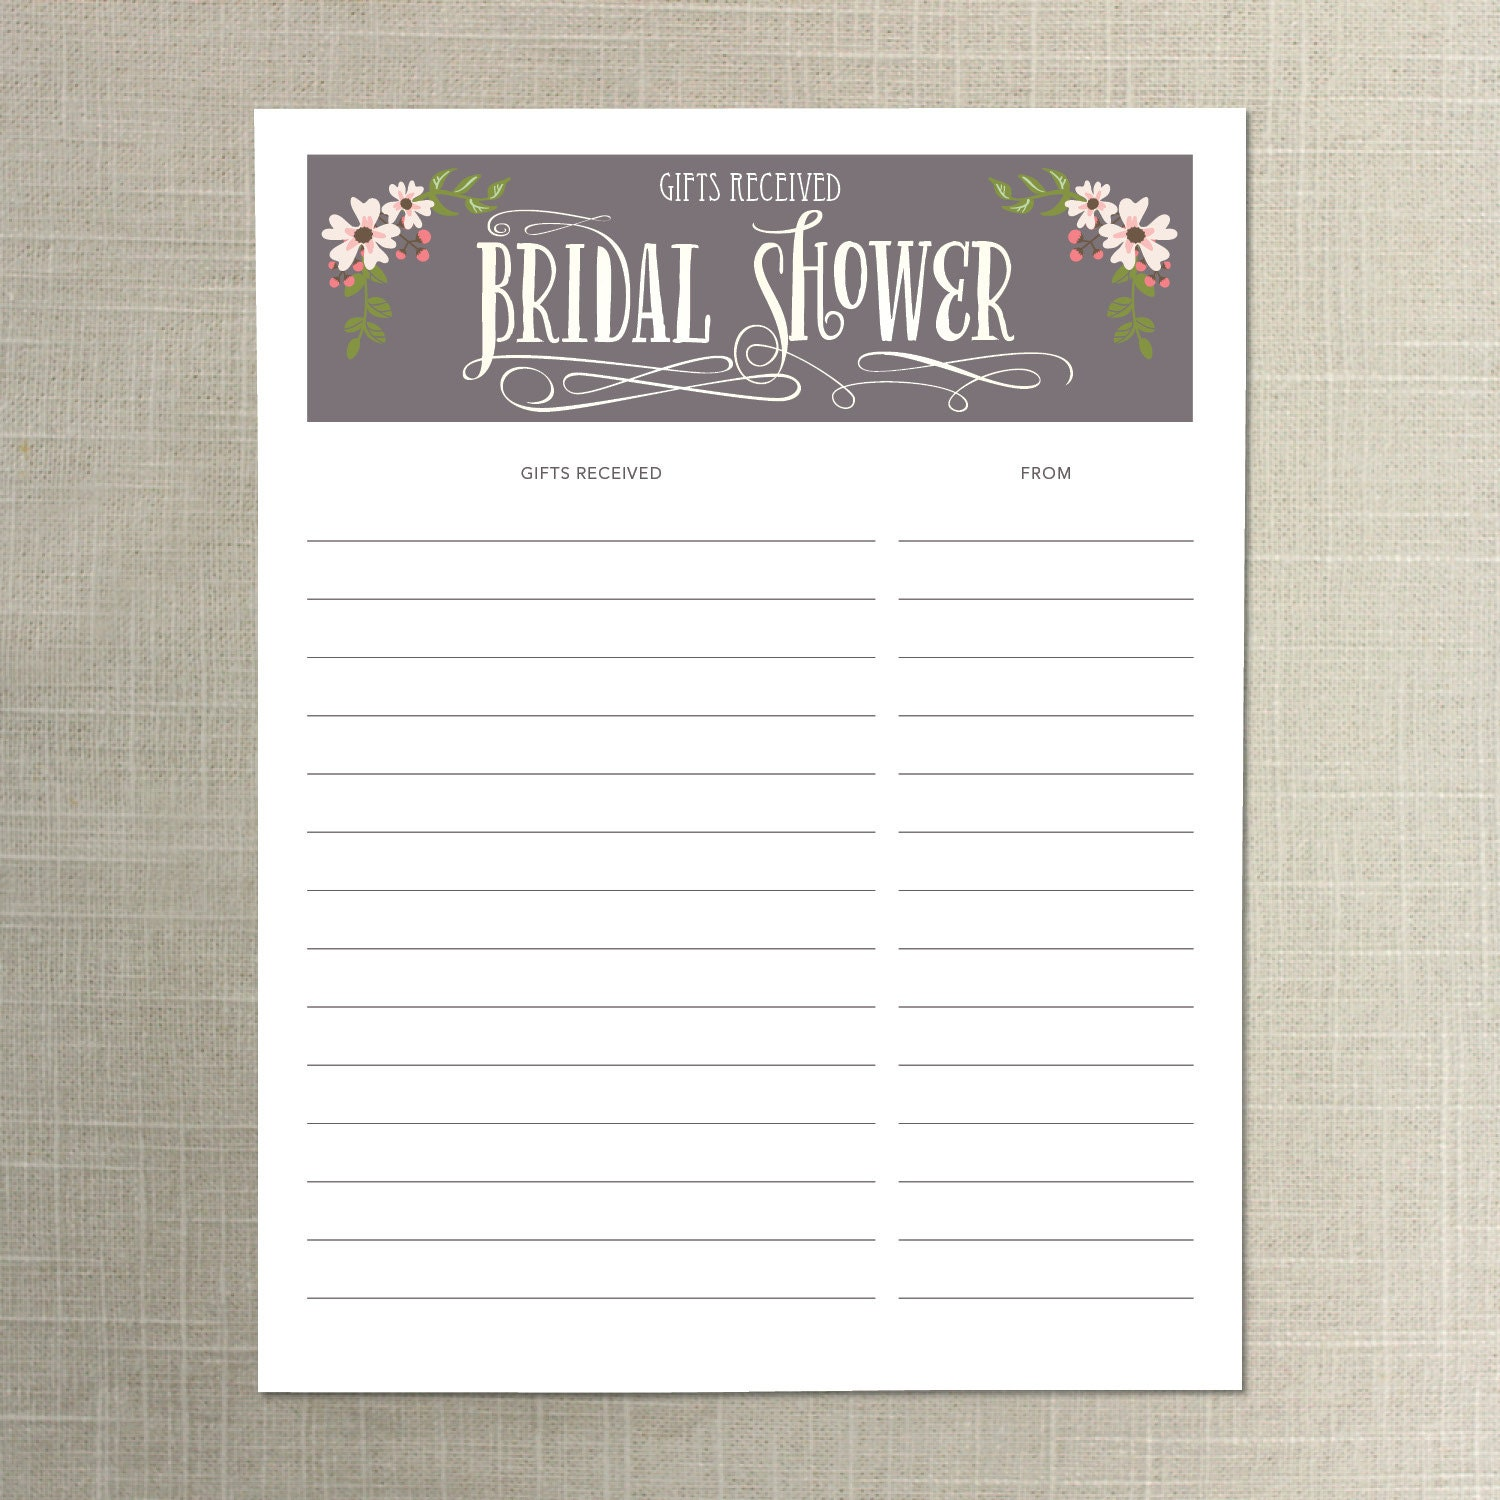 Wedding Gift List Printable : Instant Download Bridal Shower Gift List Gifts Received